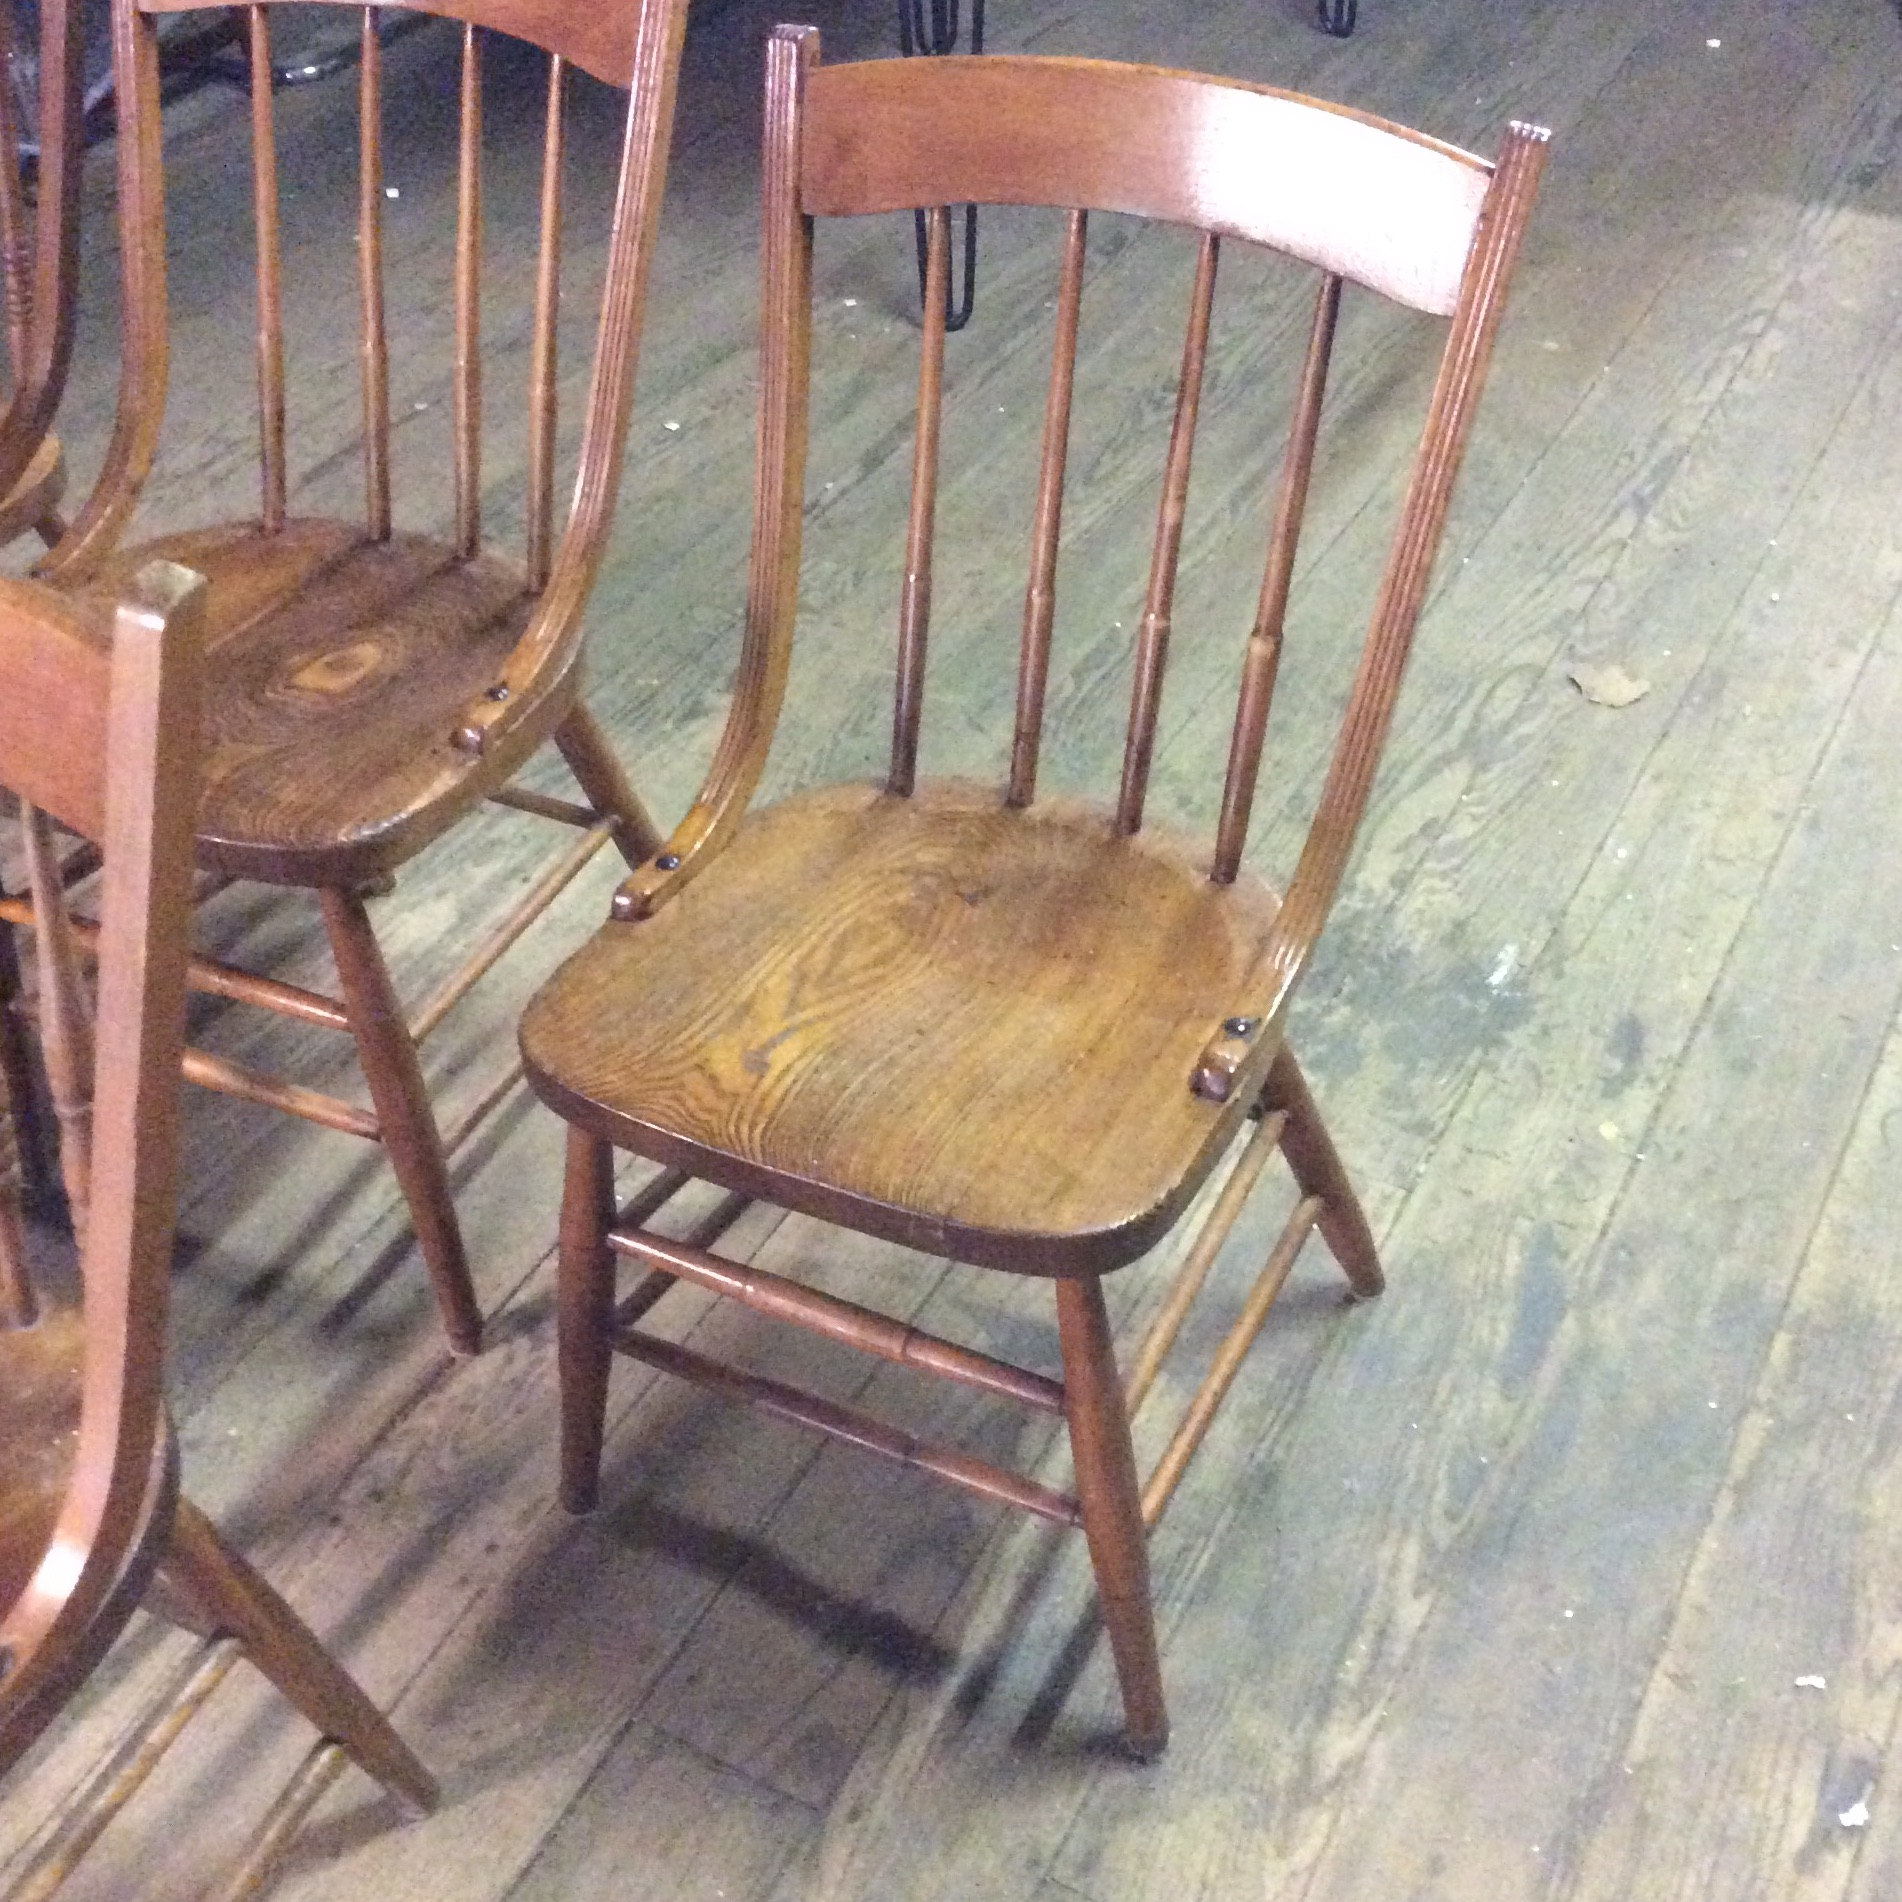 Early American Dining Room Furniture: Early American Country Farm Dining Chairs - Set Of 5